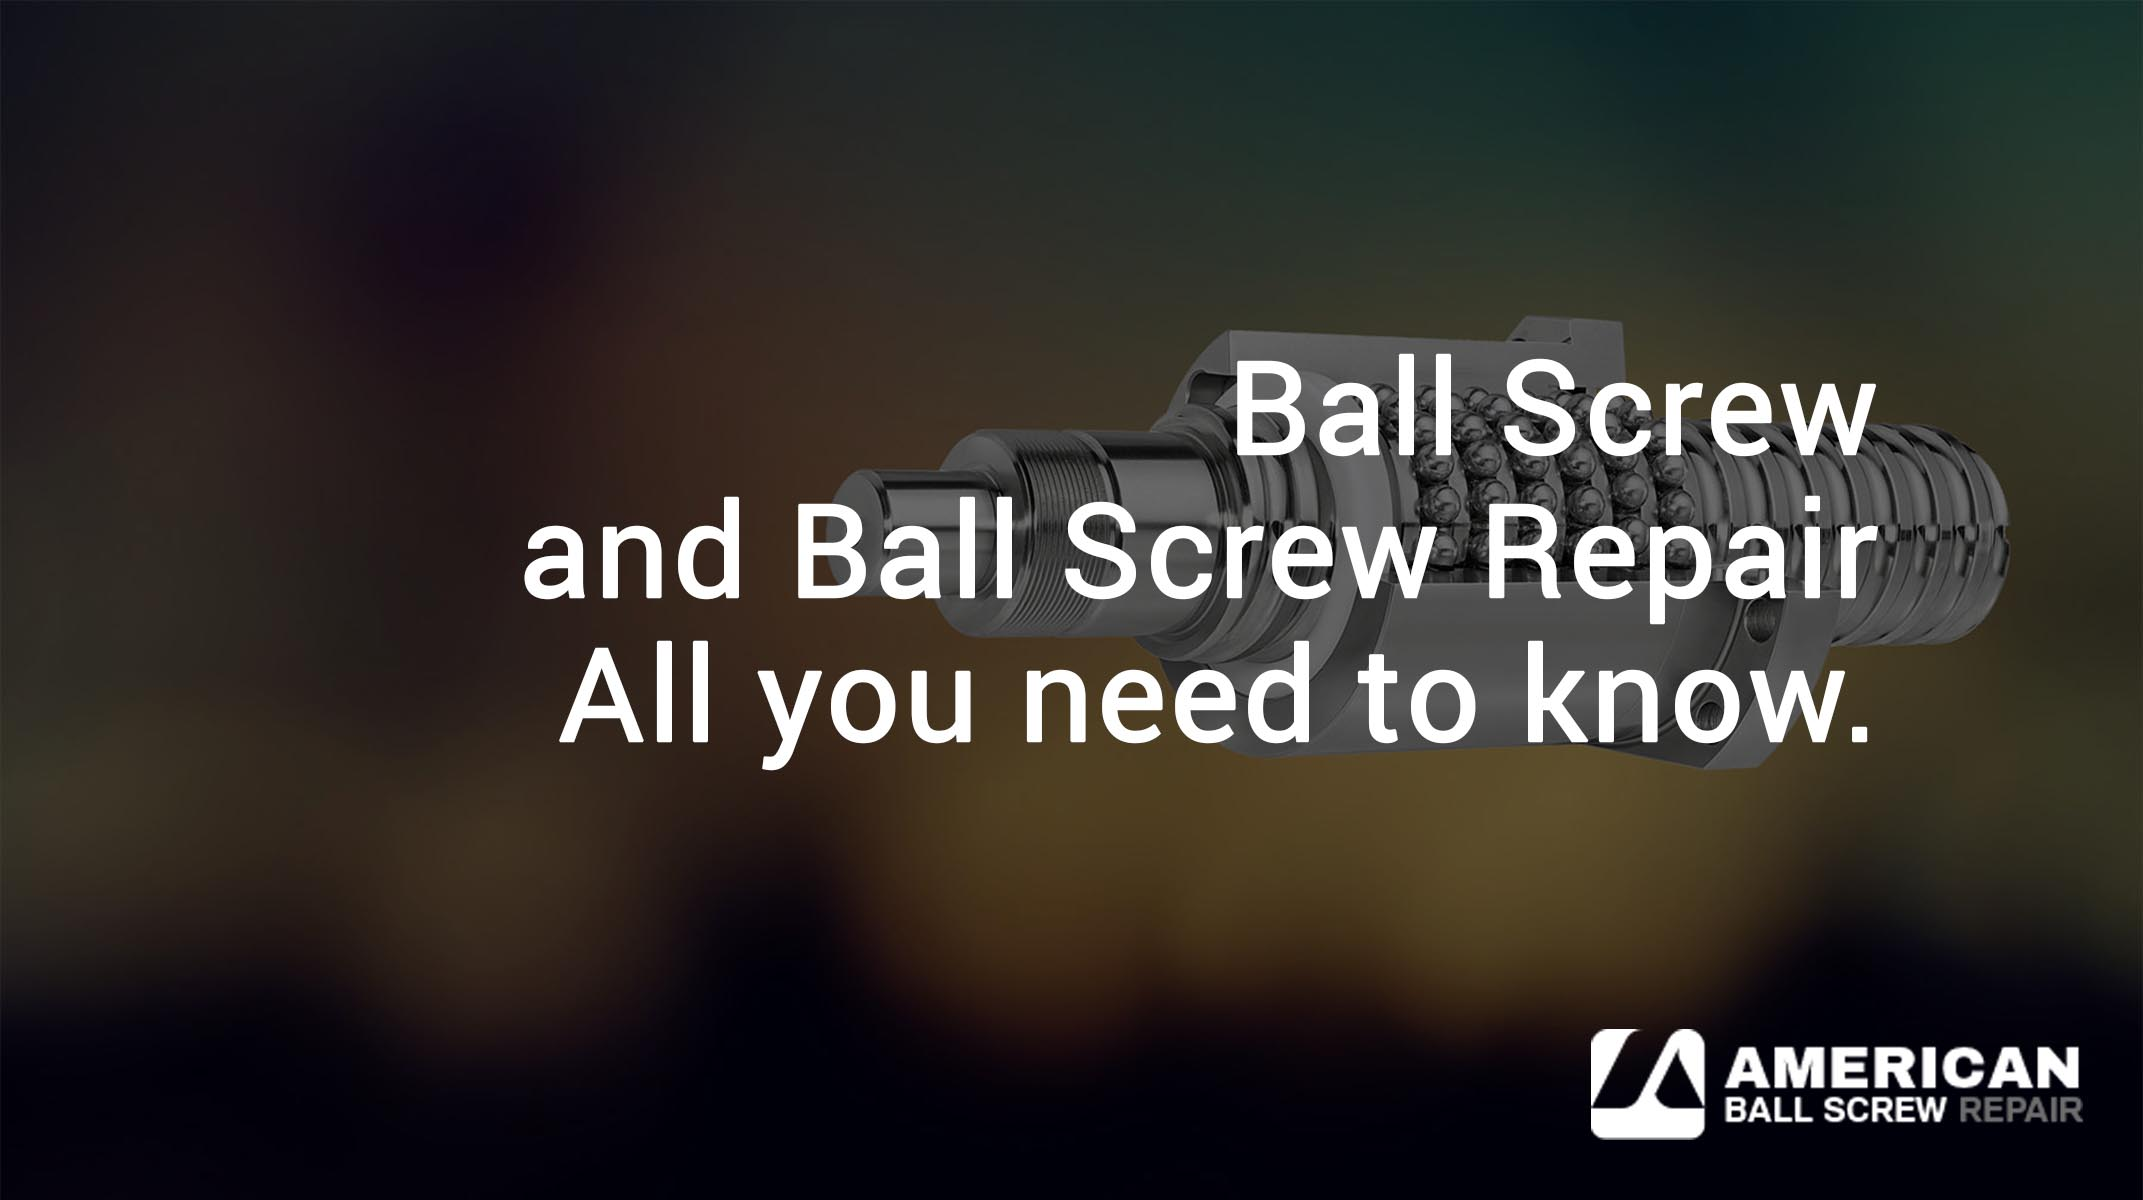 ball-screw-ball-screw-repair-all-you-need-to-know-article-title